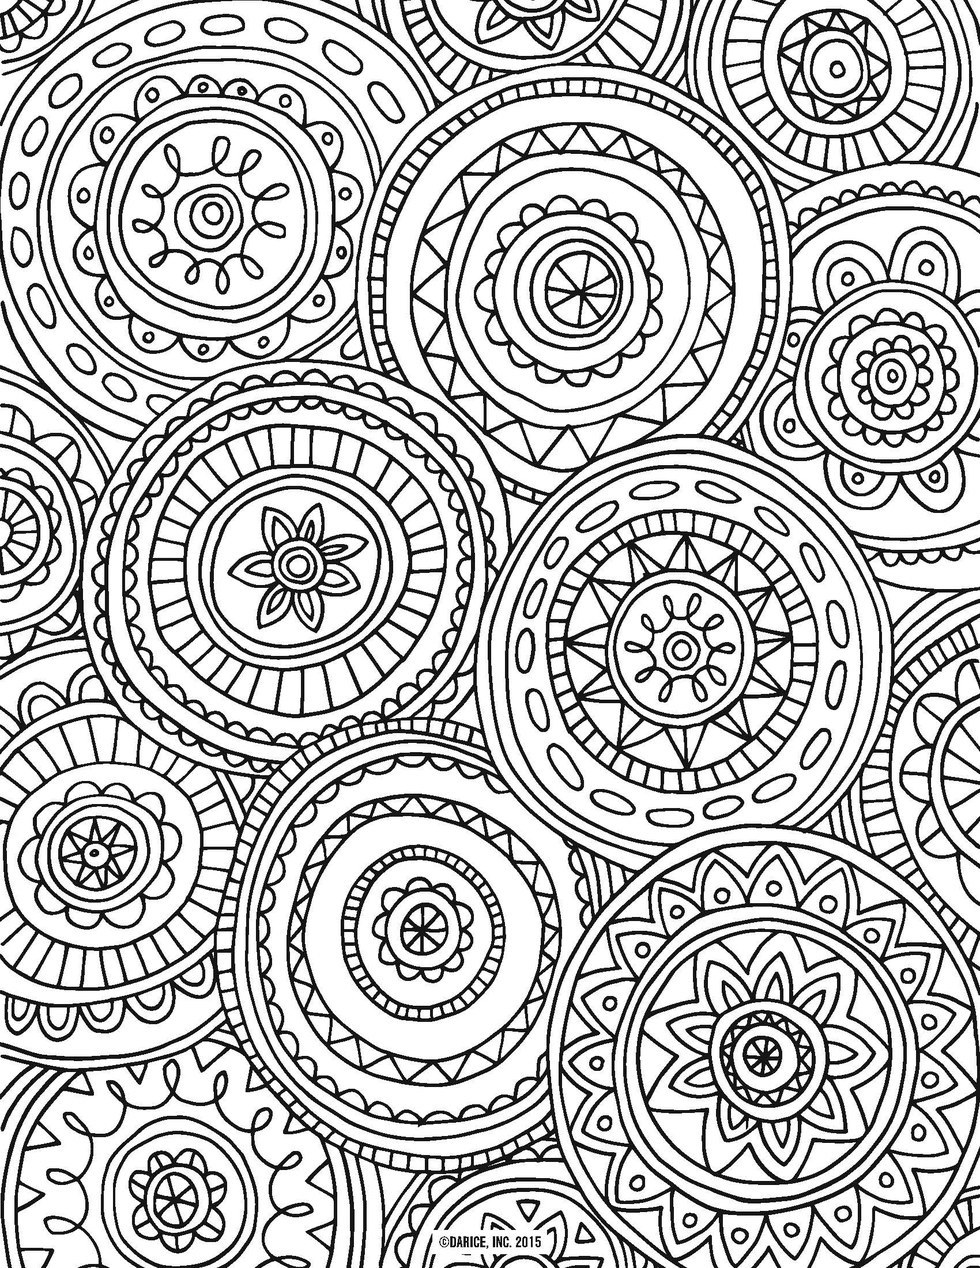 Adult Coloring: A Simple Fad Or Serious Therapy?